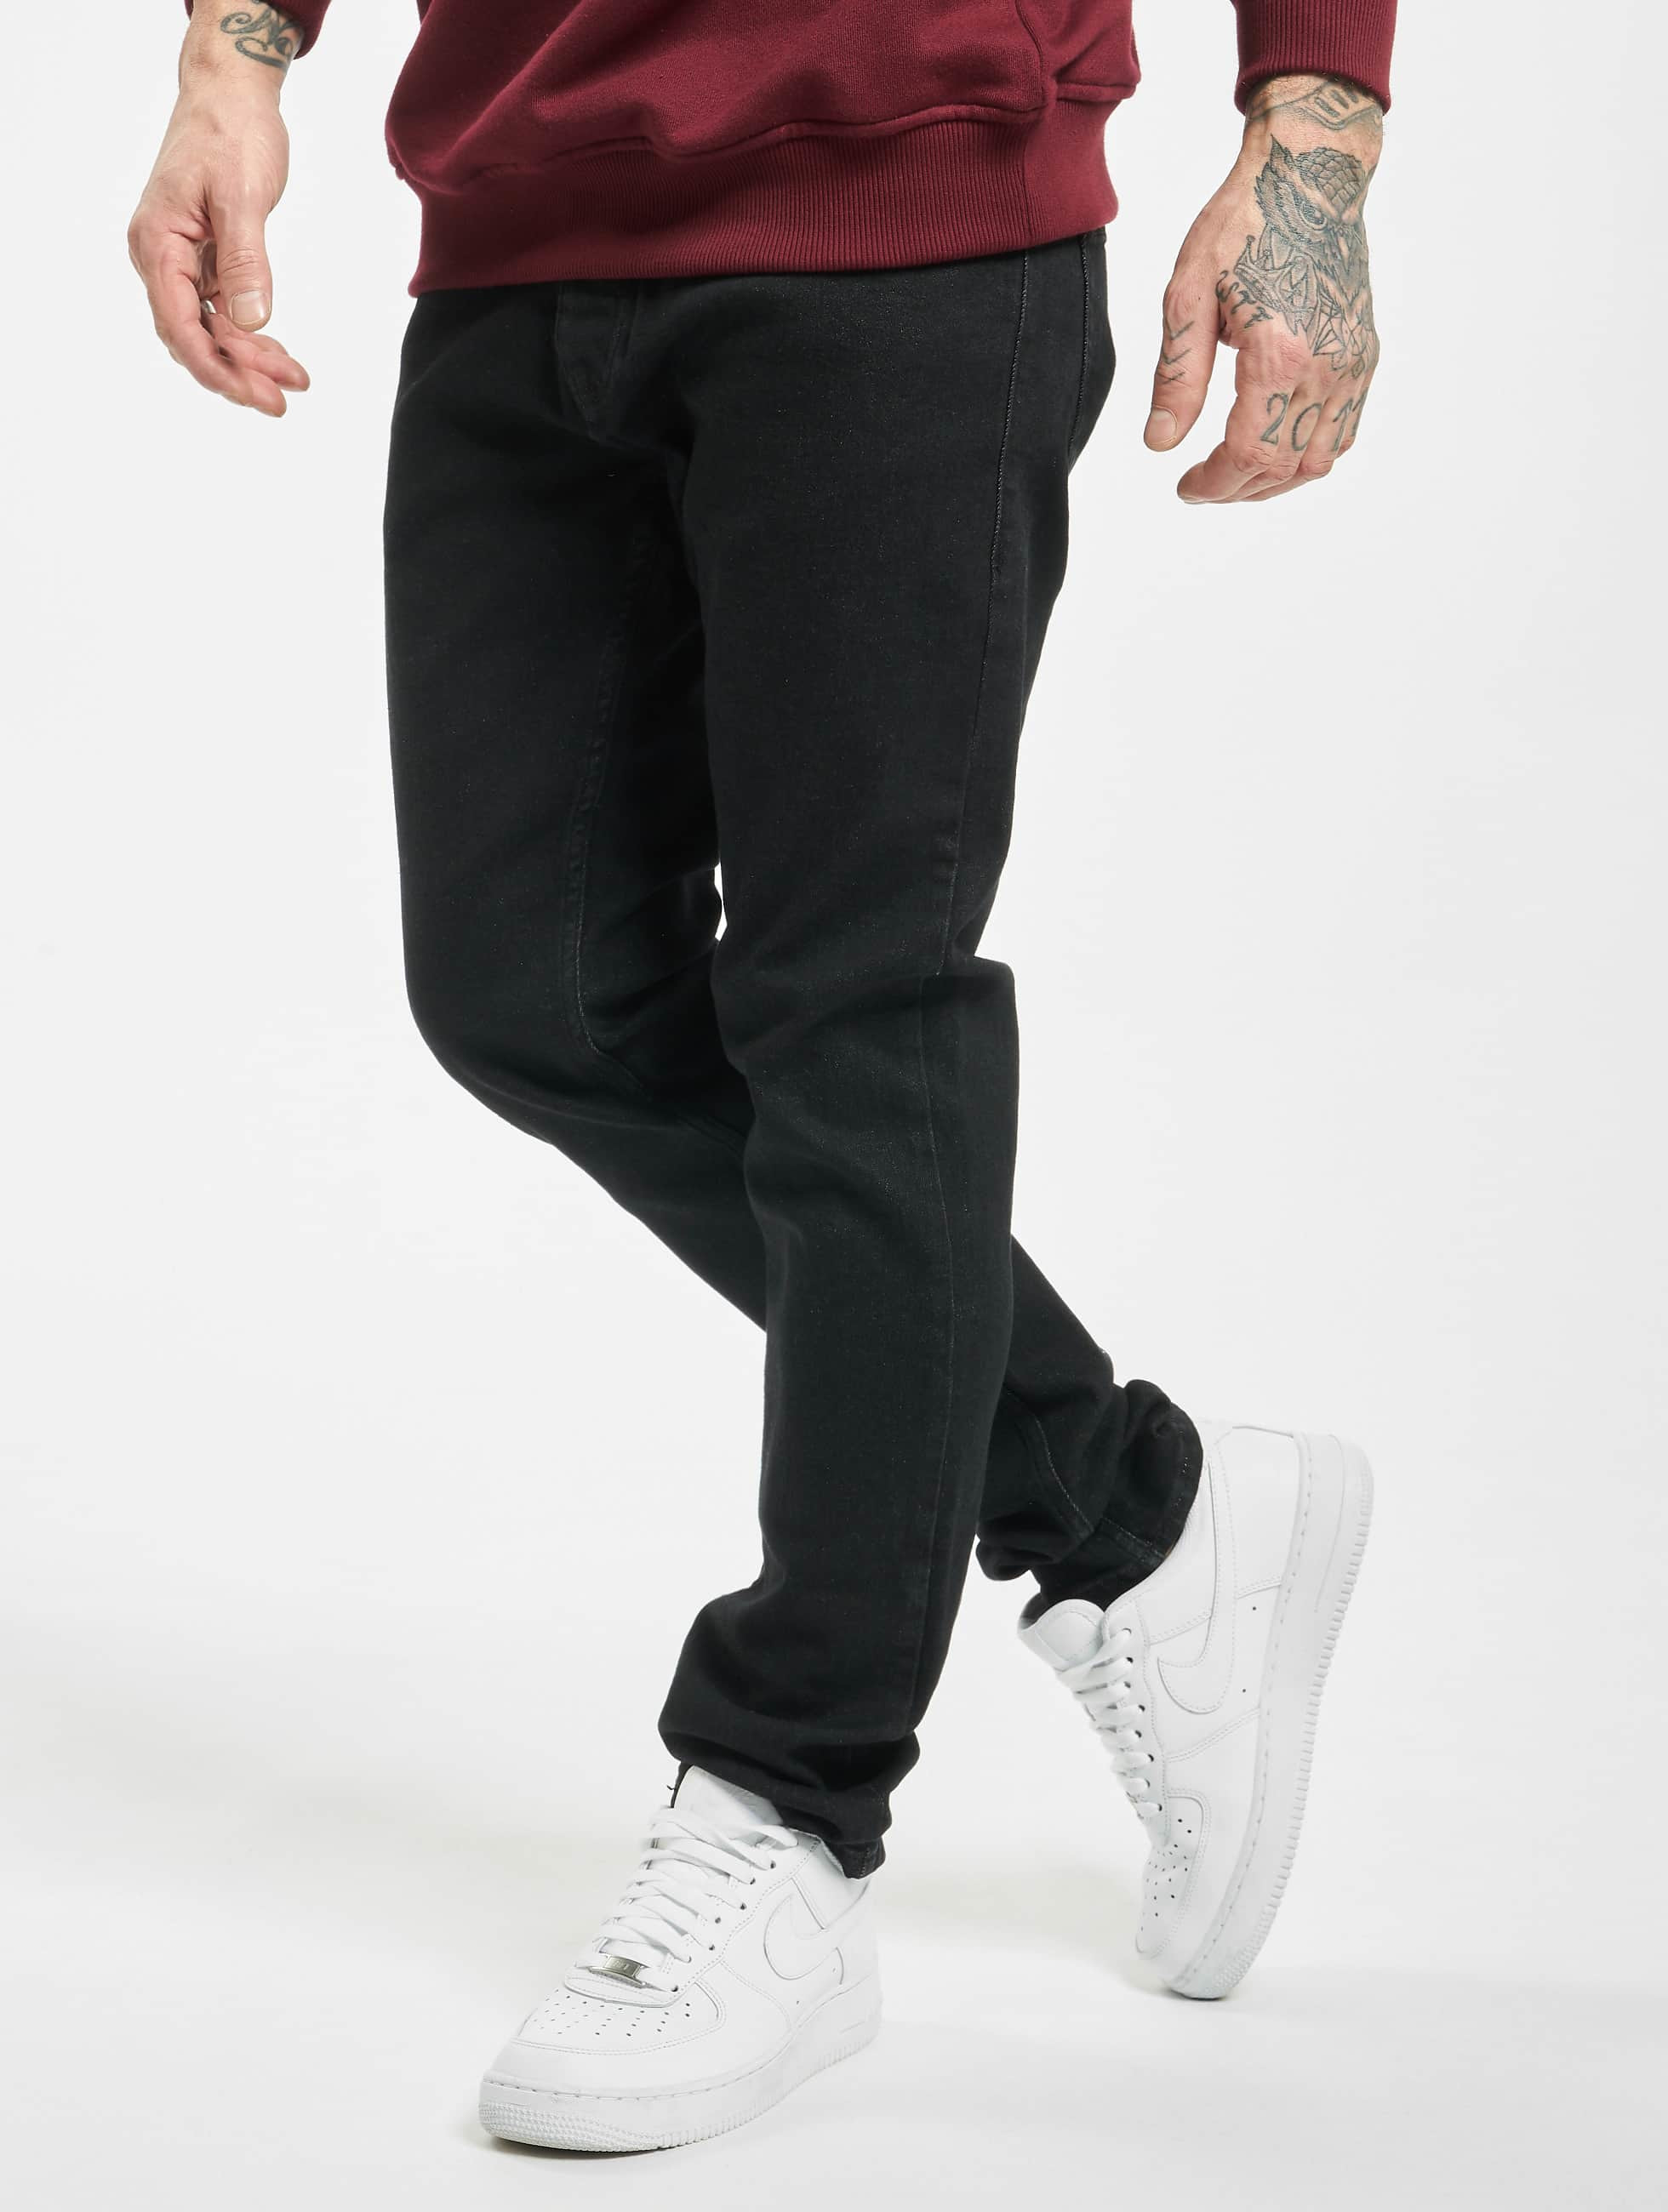 2Y / Slim Fit Jeans Cengiz in black W 36